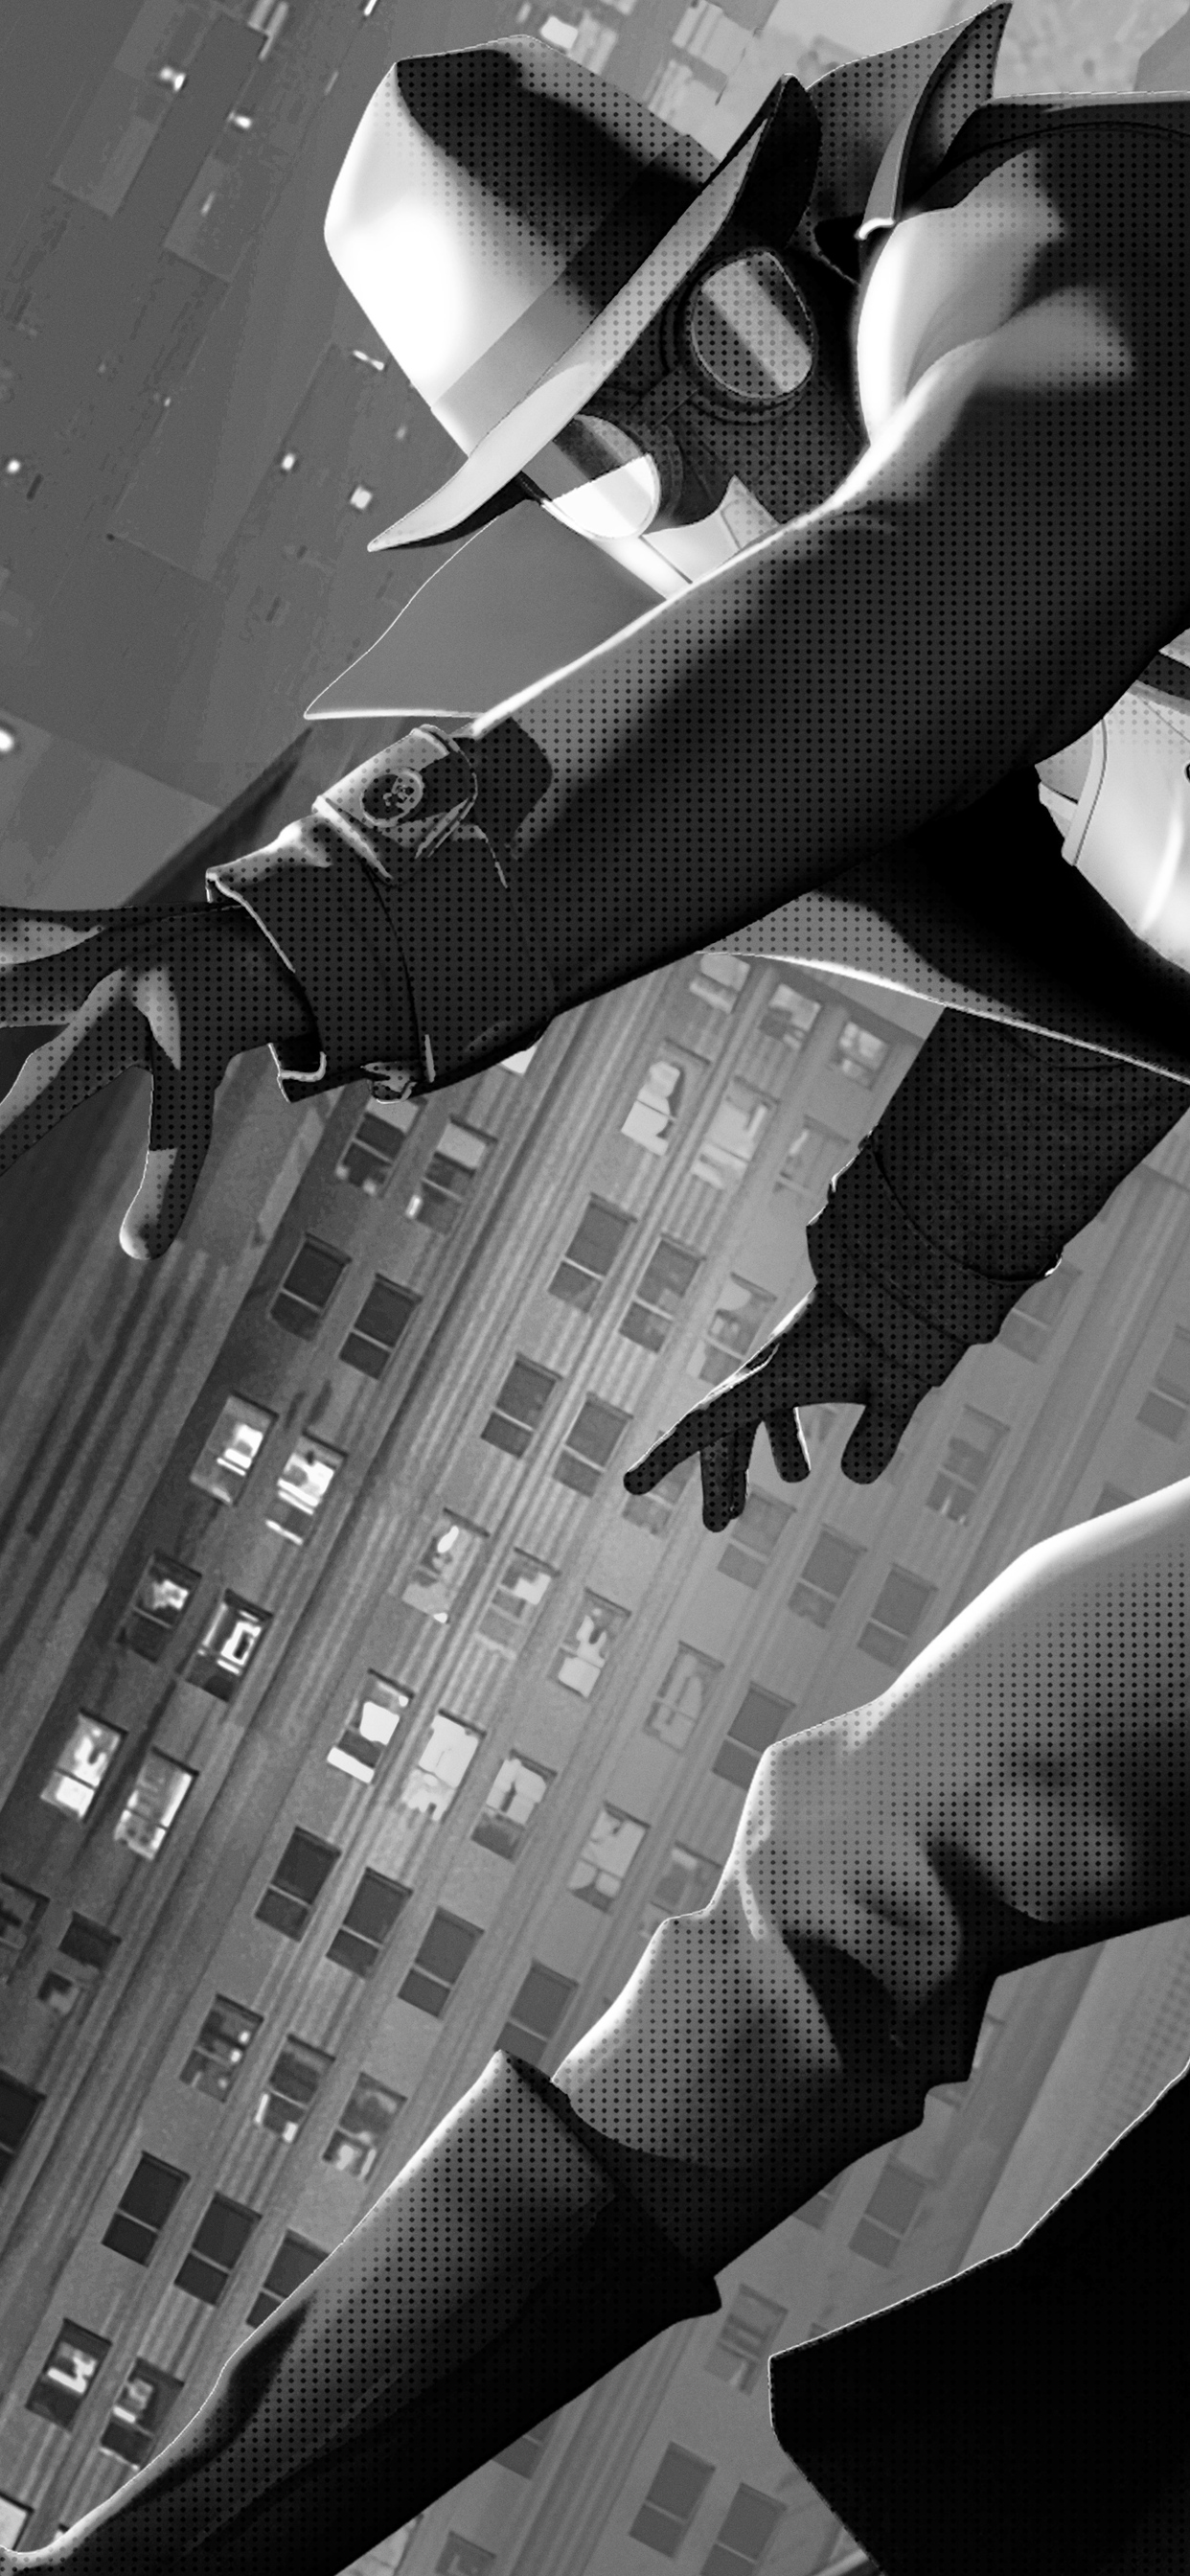 1242x2688 Spider Man Noir Iphone Xs Max Hd 4k Wallpapers Images